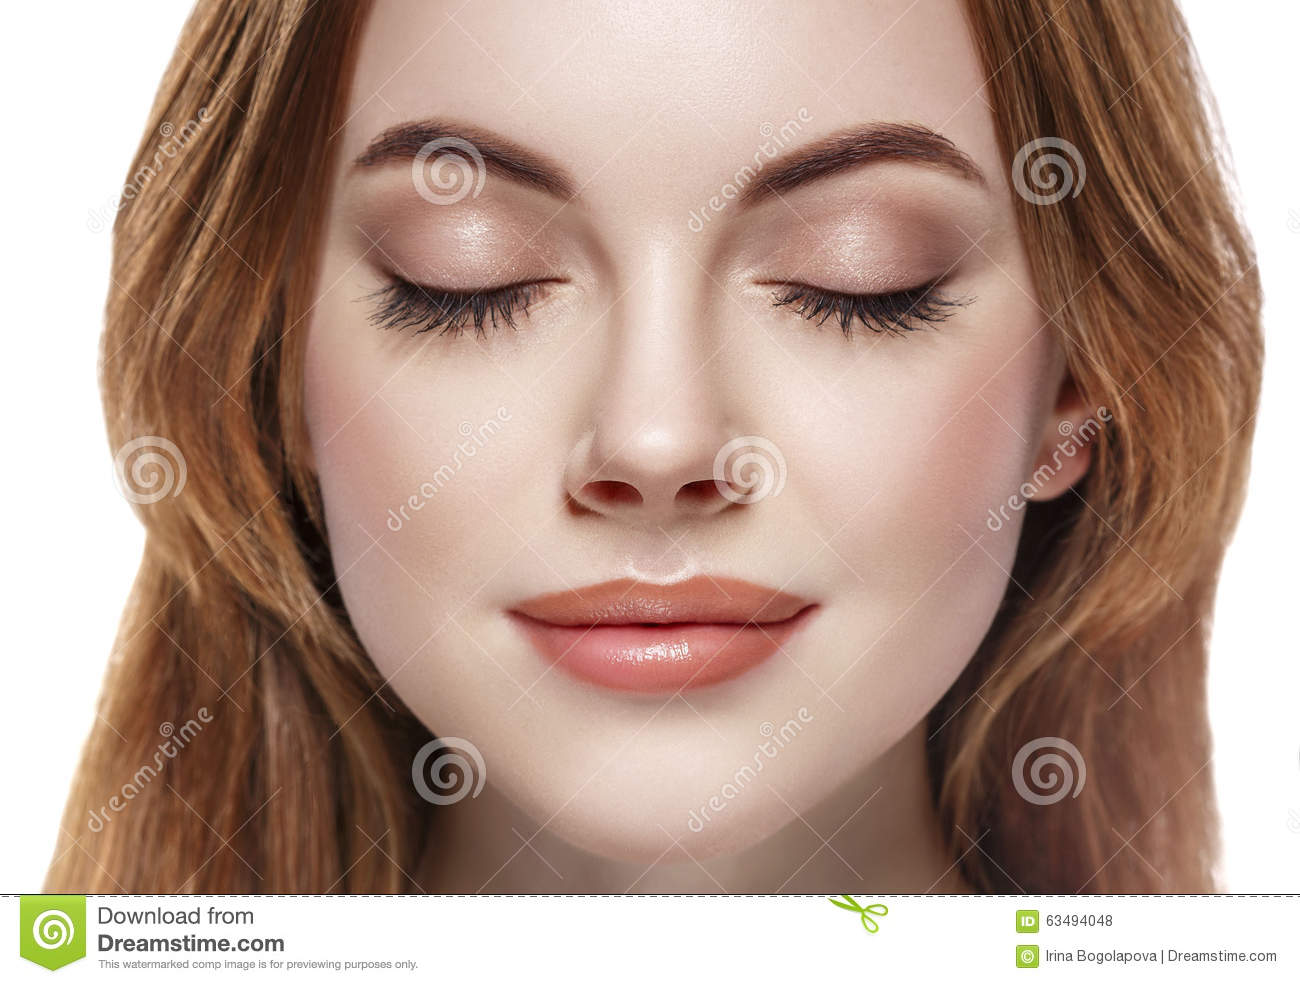 Eyes woman closed eyebrow lashes face close-up isolated on white